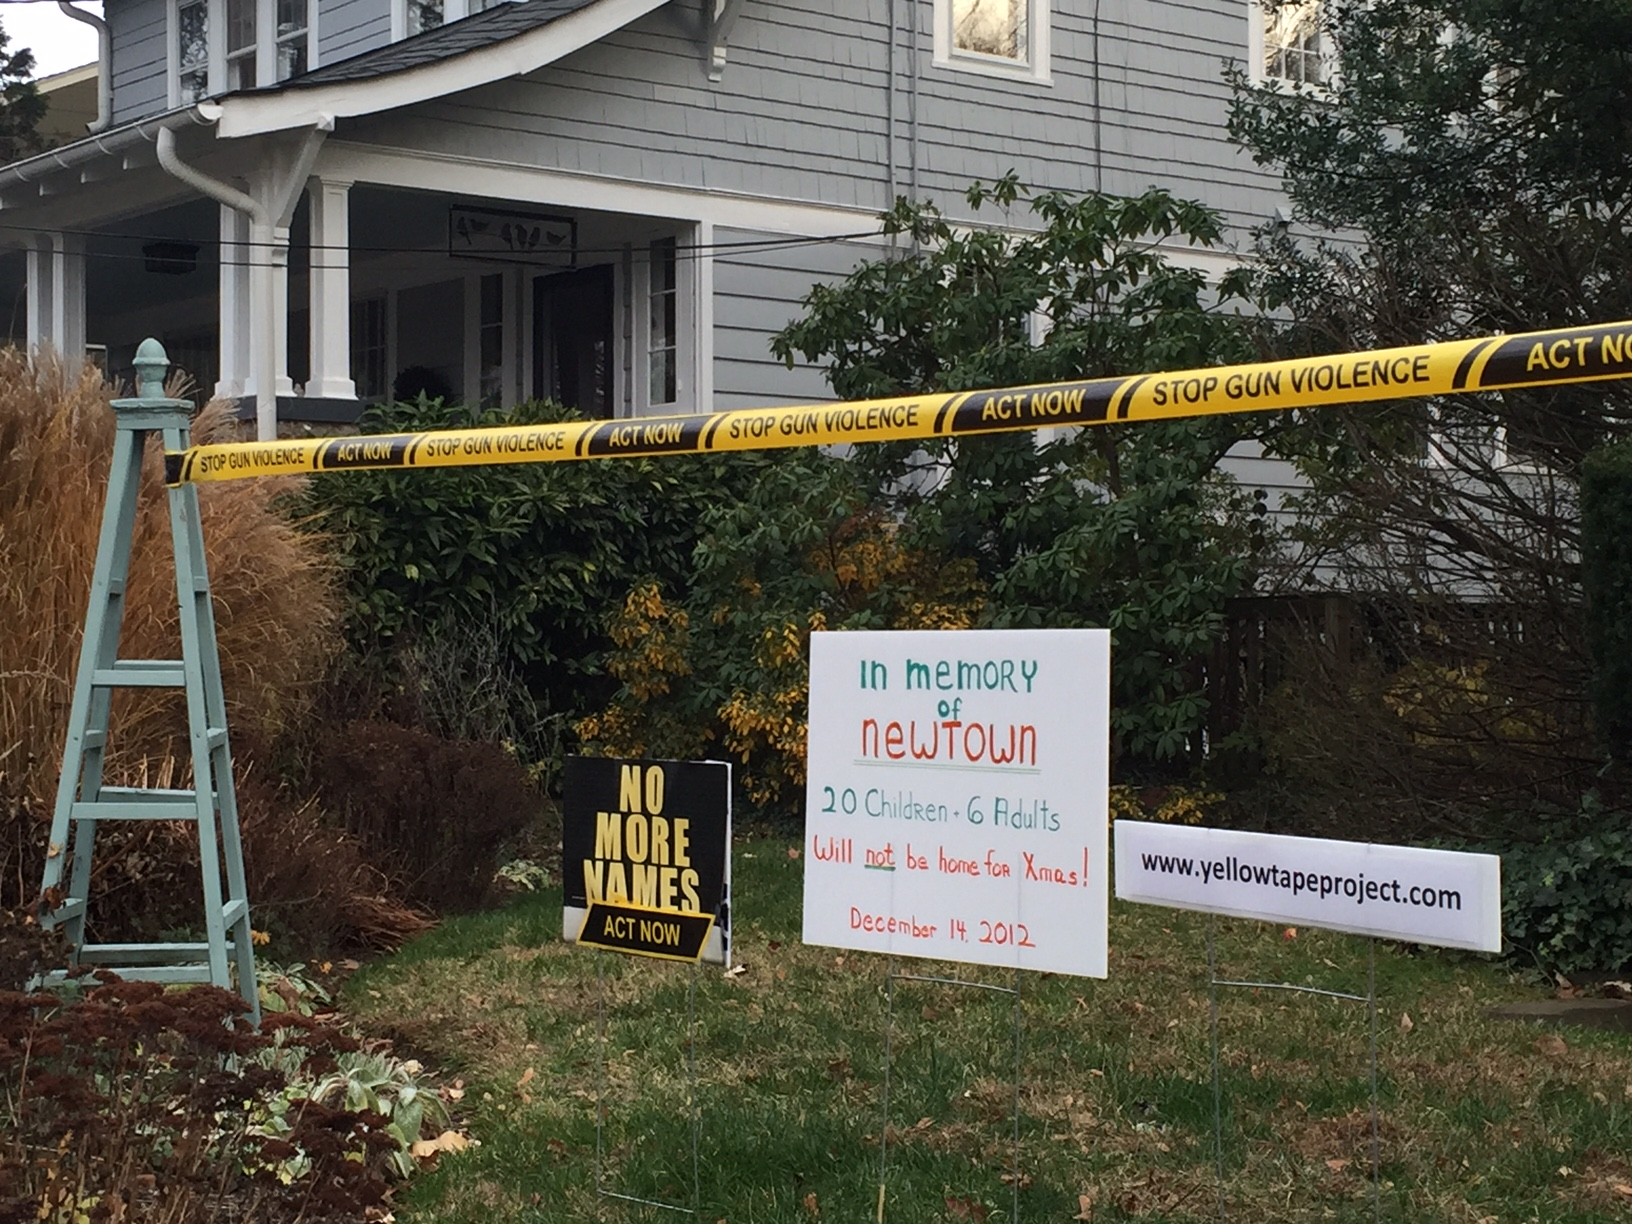 Yellow tape wraps D.C. neighborhood in call for change to gun laws